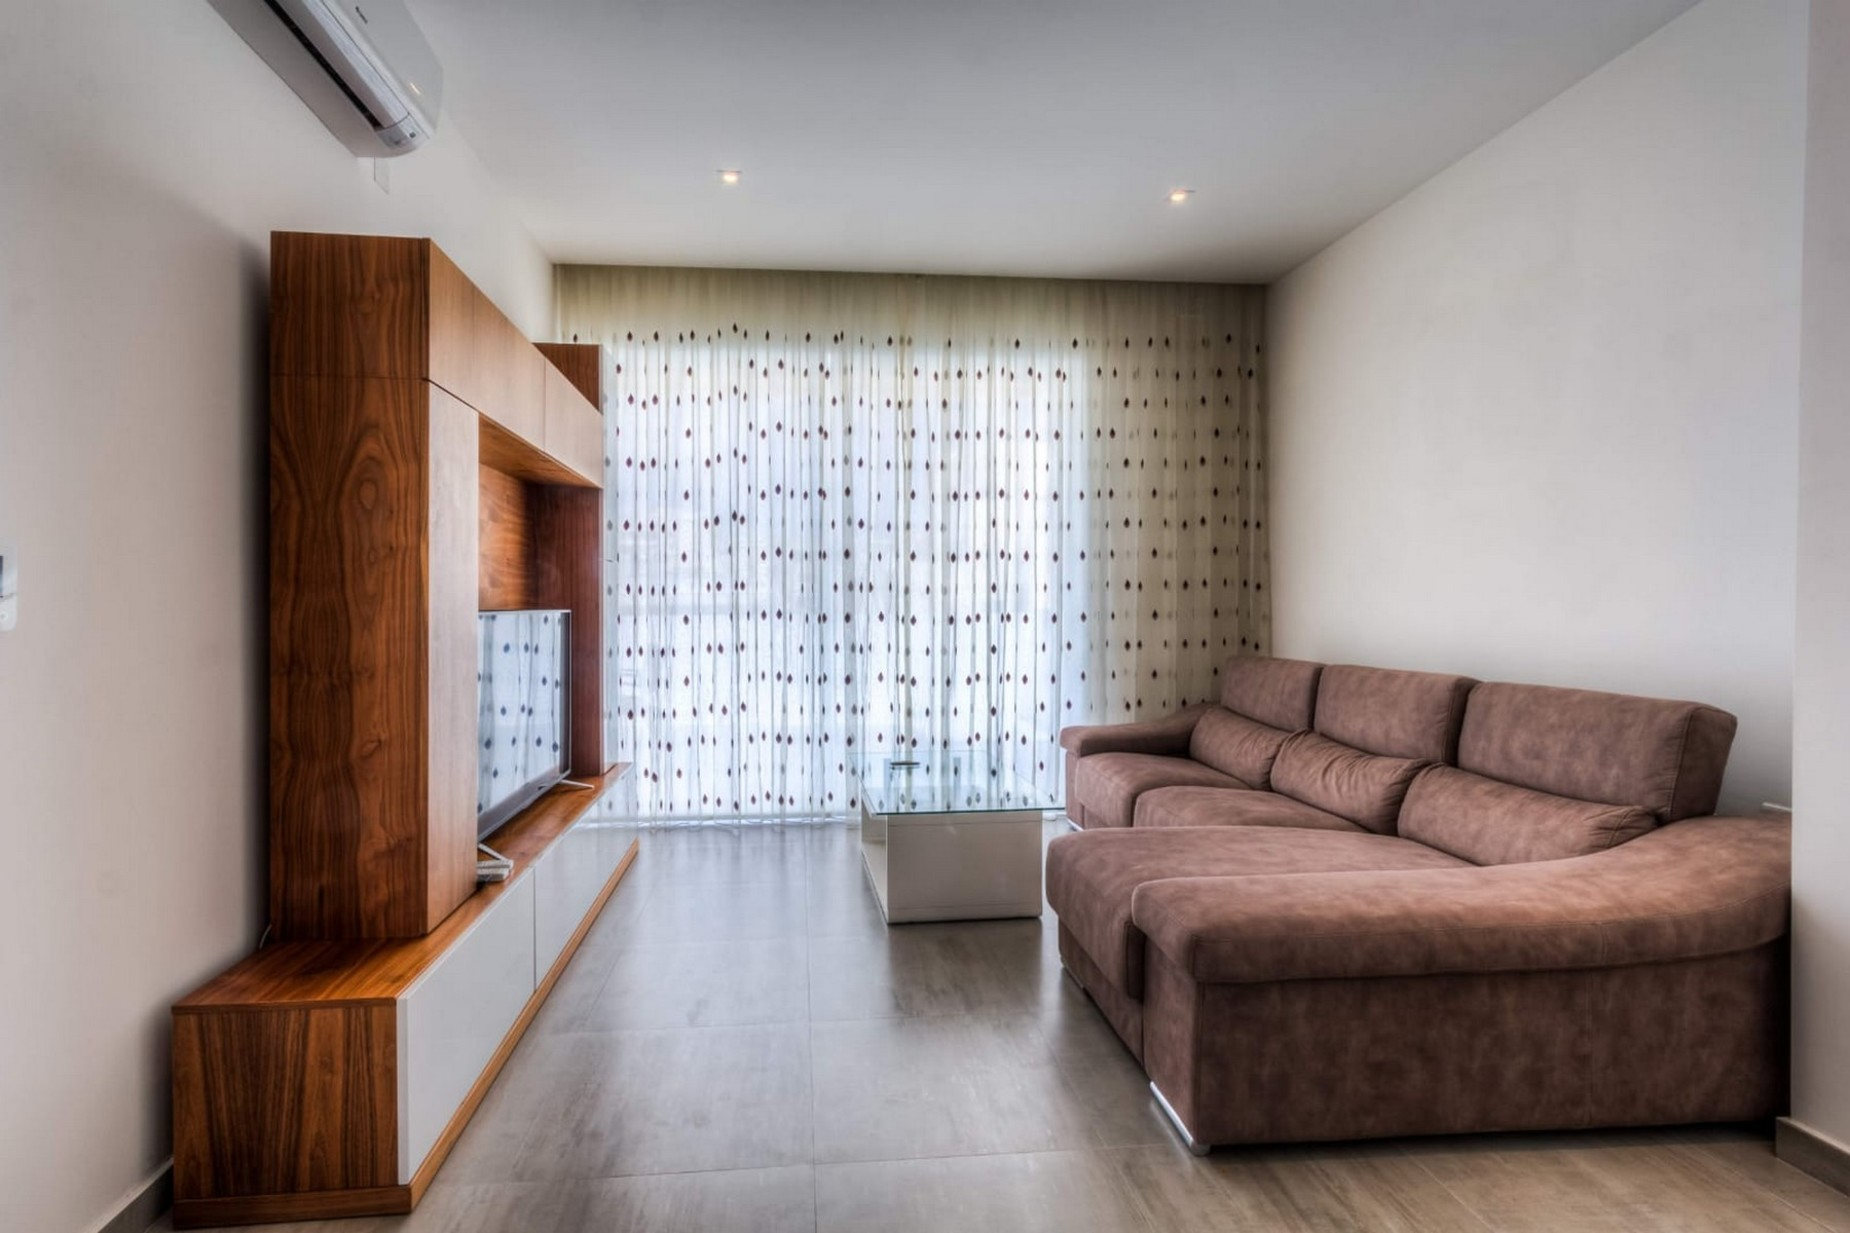 3 bed Penthouse For Rent in Gzira, Gzira - thumb 3